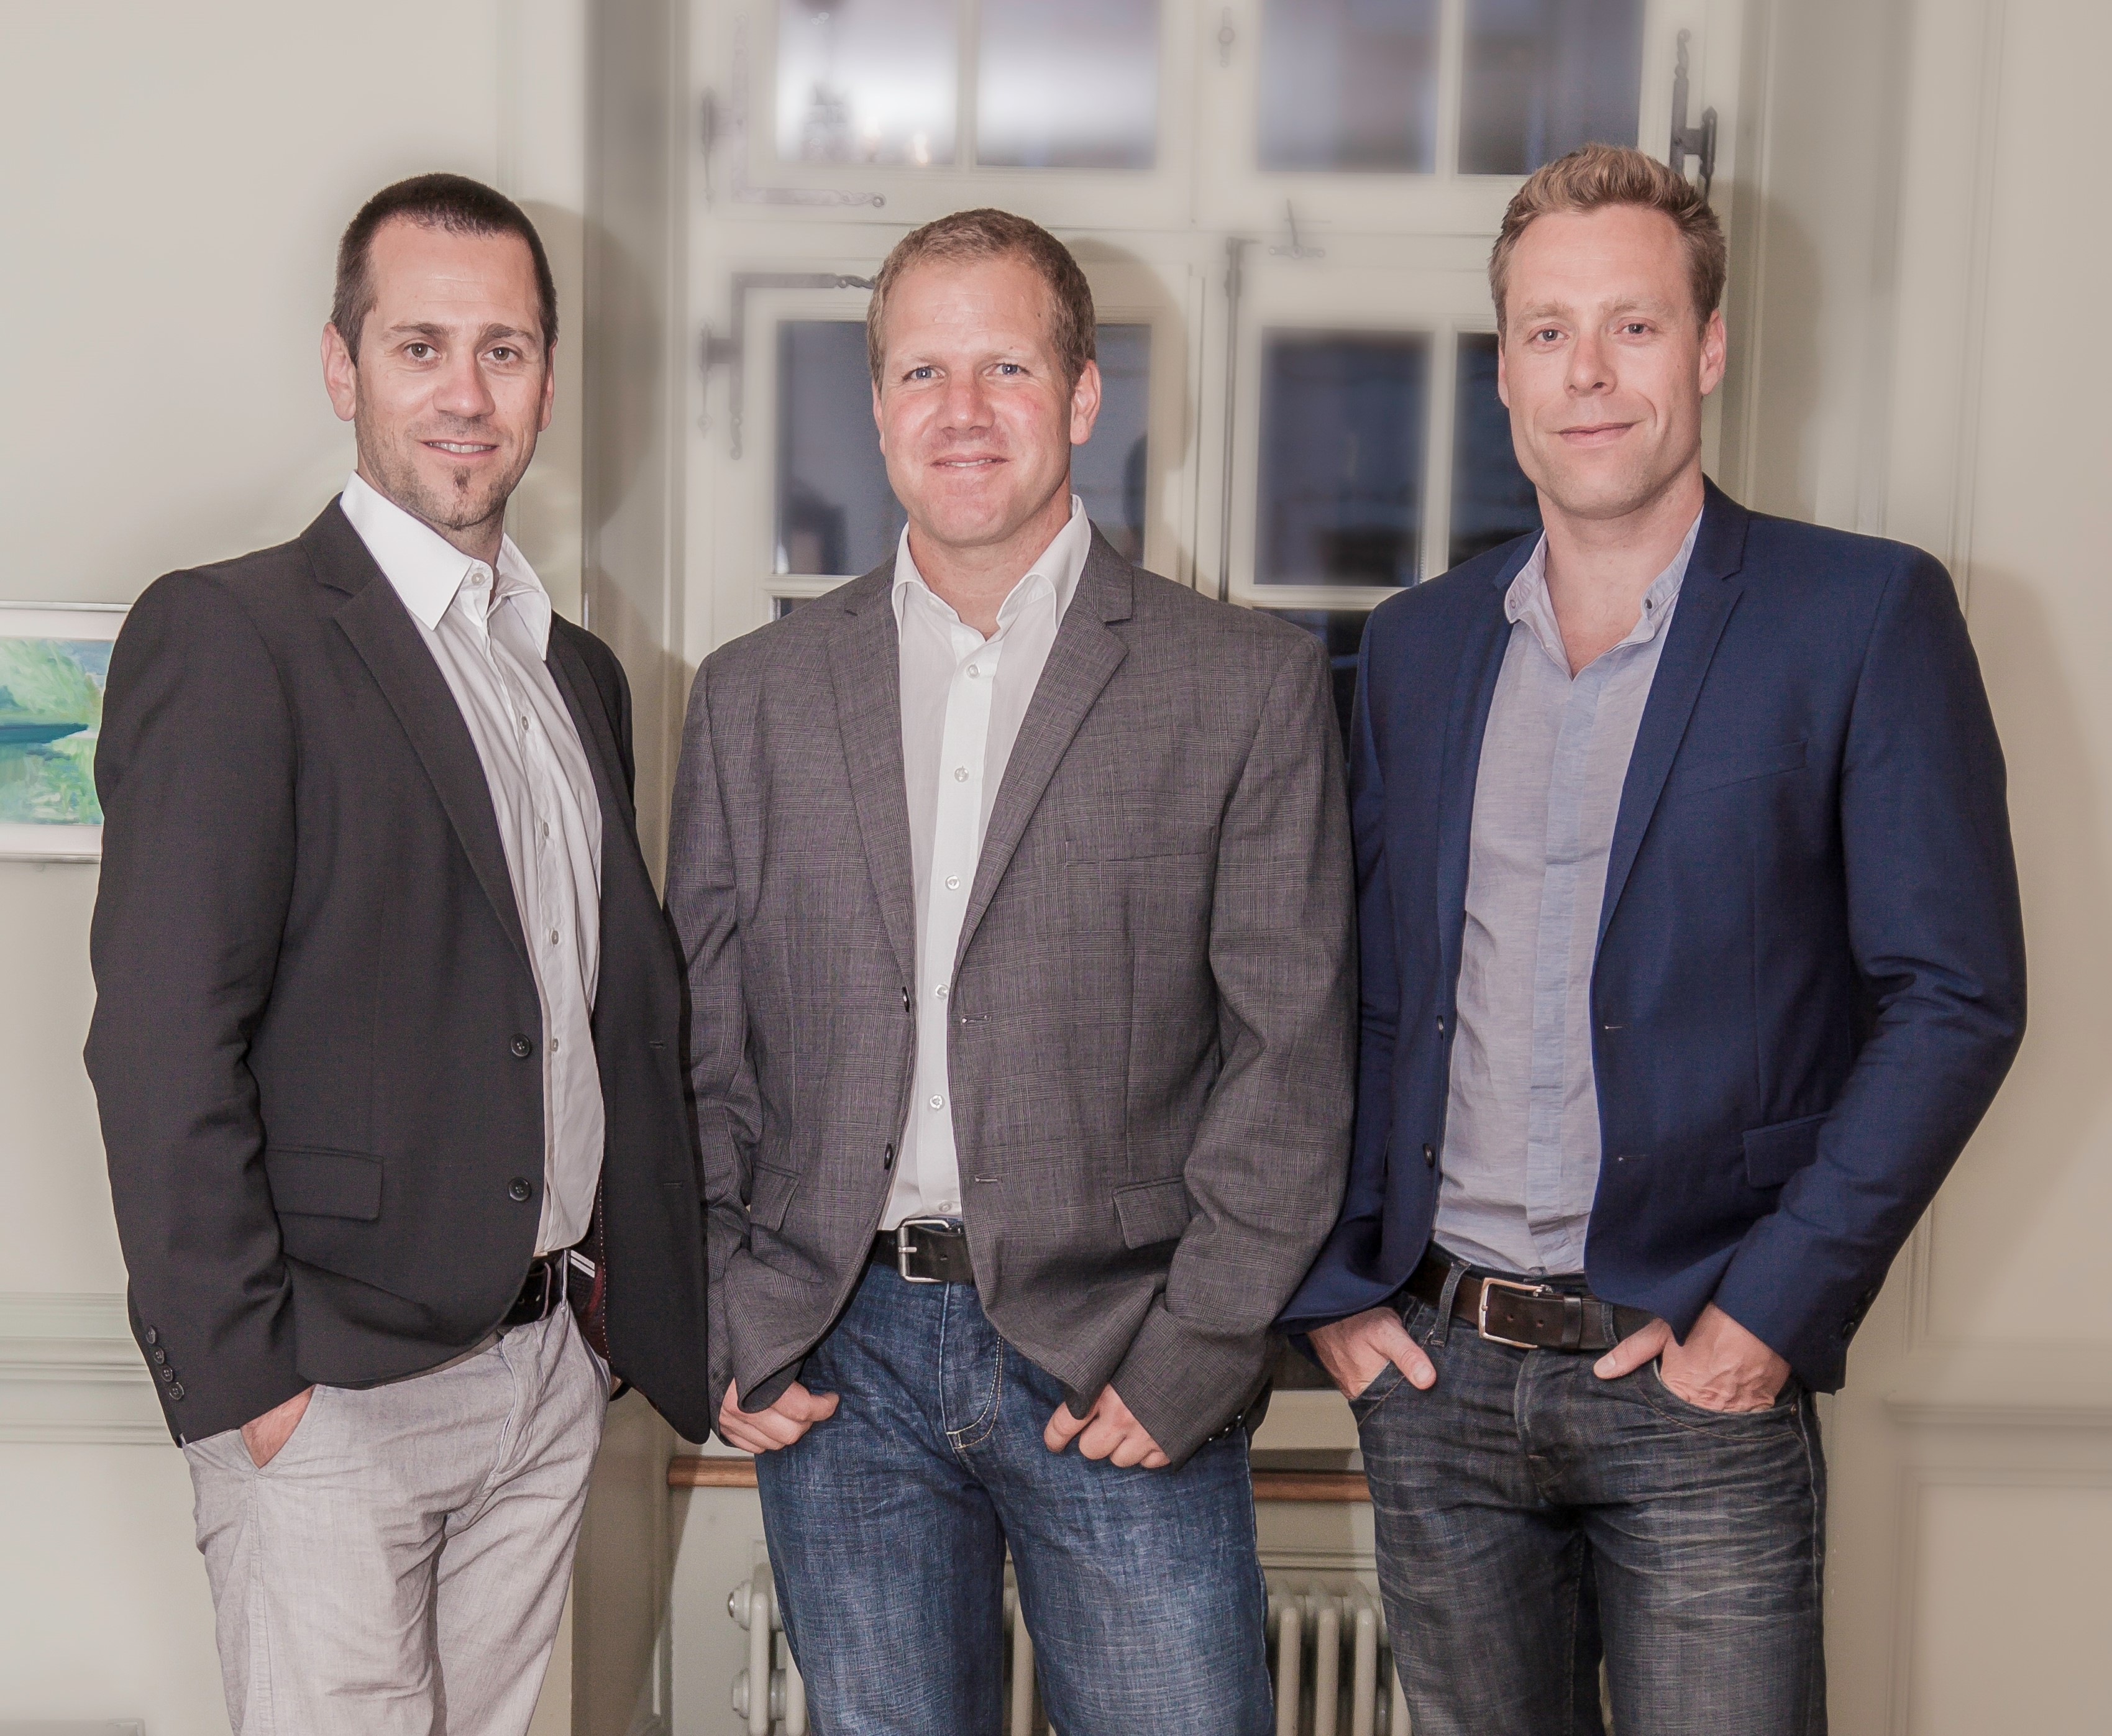 Founders' Team of Bodygee: Marcel Frikart, Oliver Fuchs, Jan Alther